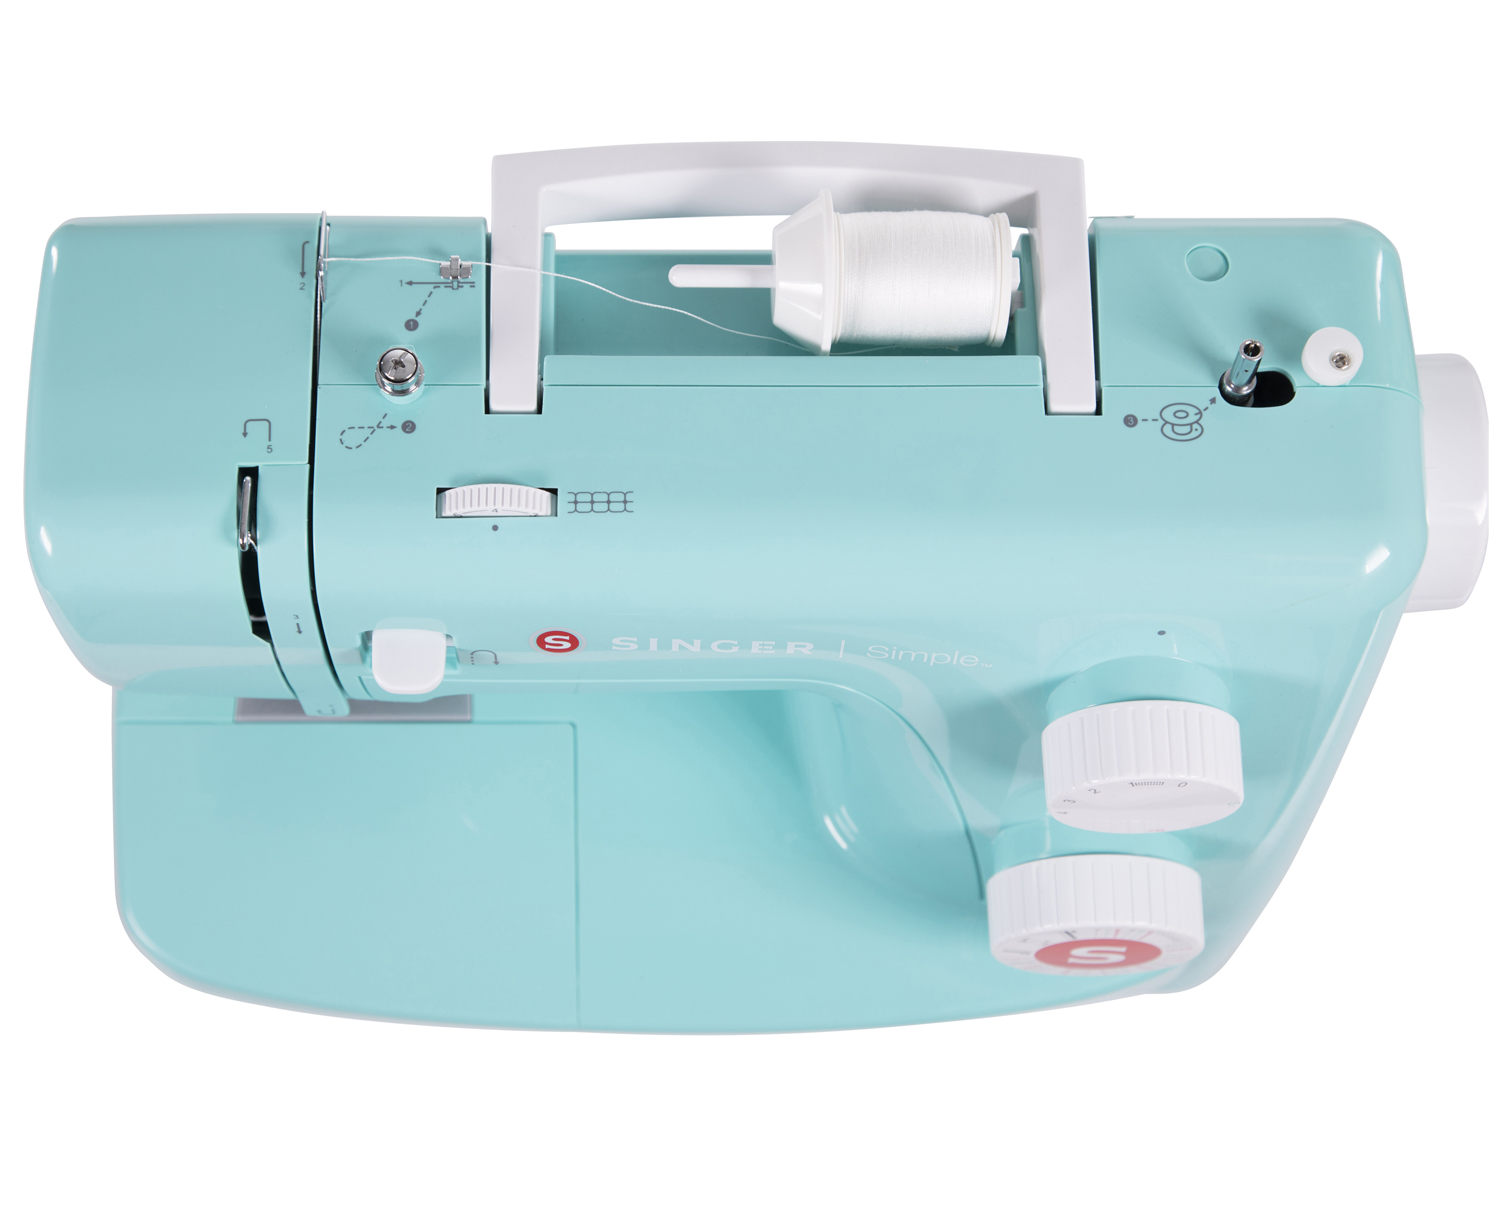 Singer-Sewing-Machine-Model-3223-23-Stitch-REFURB-Assorted-Colors